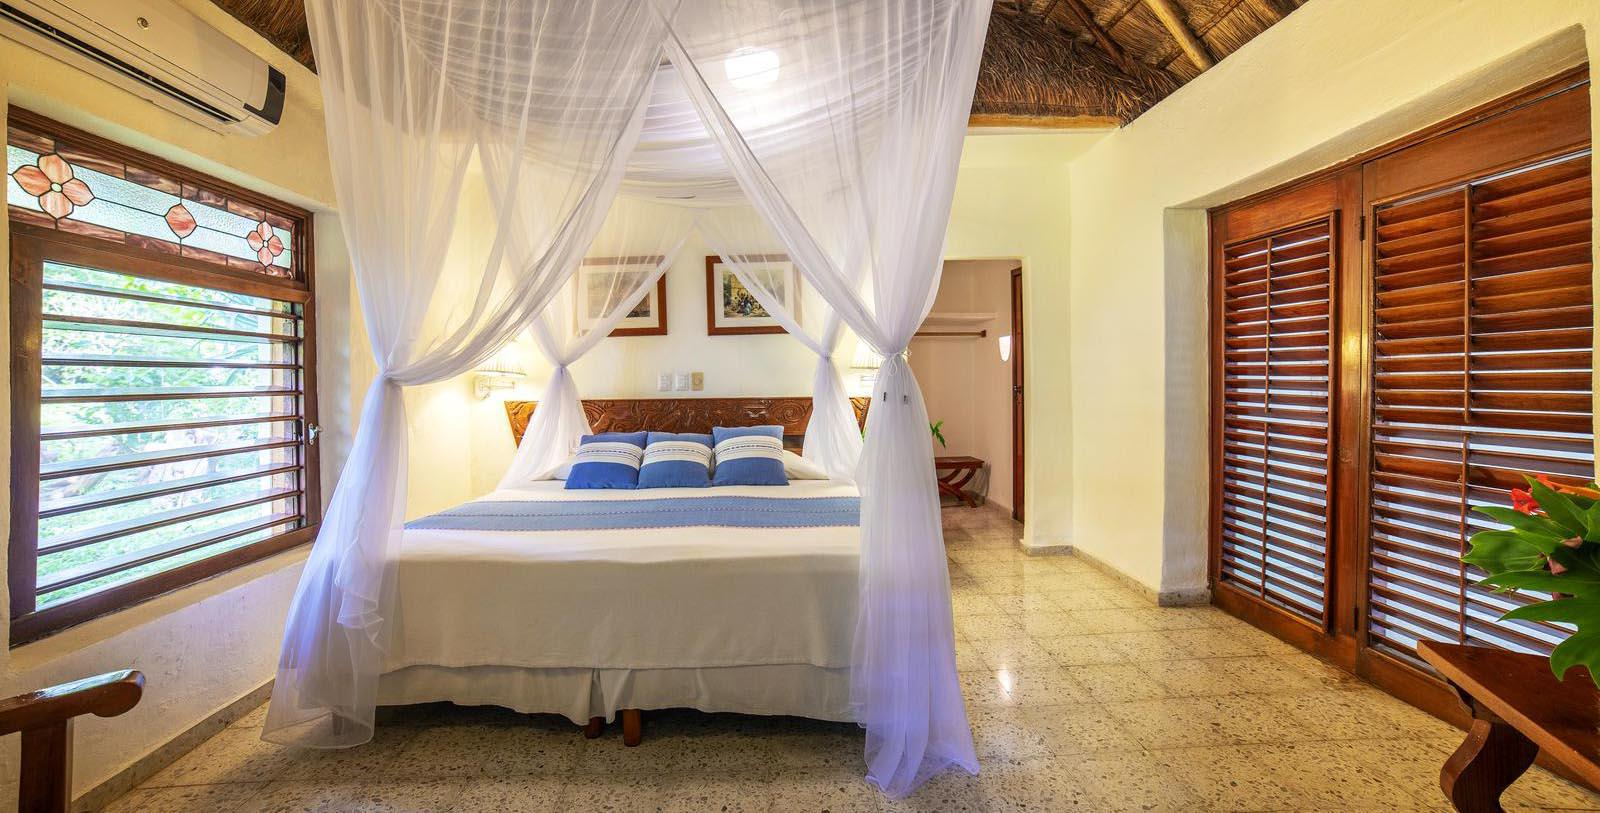 Image of Guestroom Interior Mayaland Hotel & Bungalows,1923, Member of Historic Hotels Worldwide, in Chichen Itza, Mexico, Location